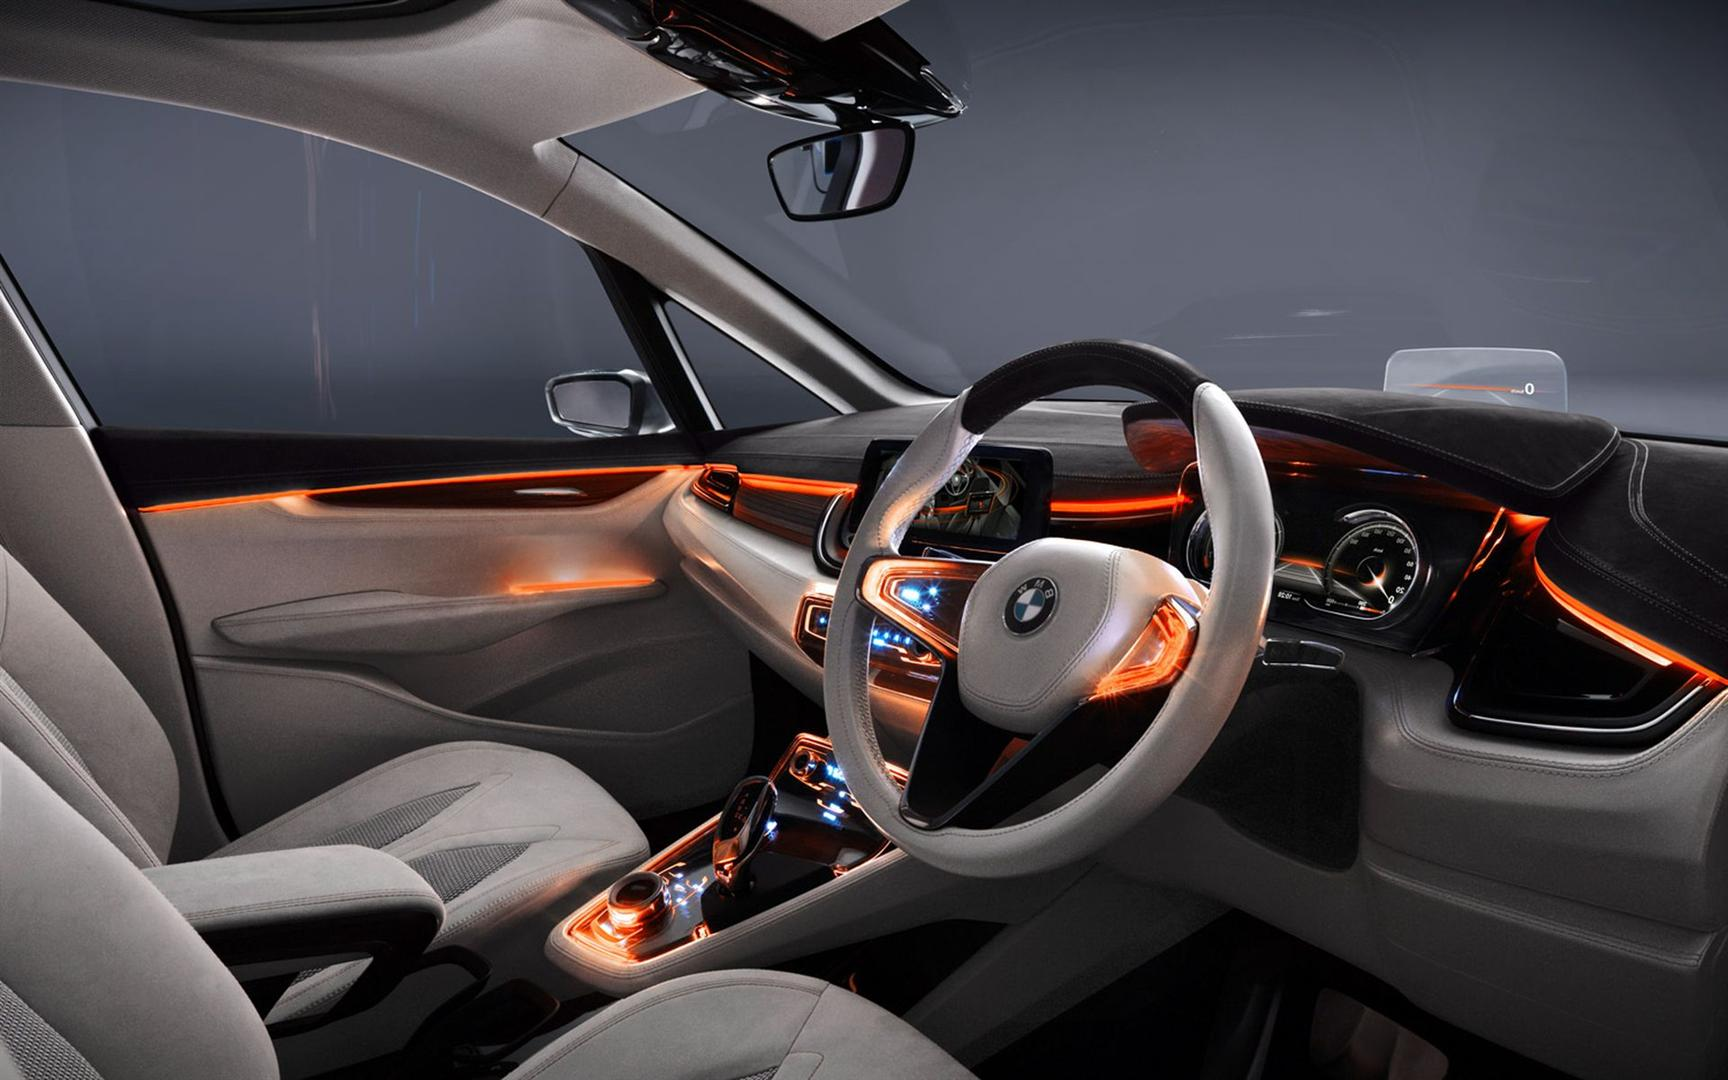 2019 BMW X7 Interior Features